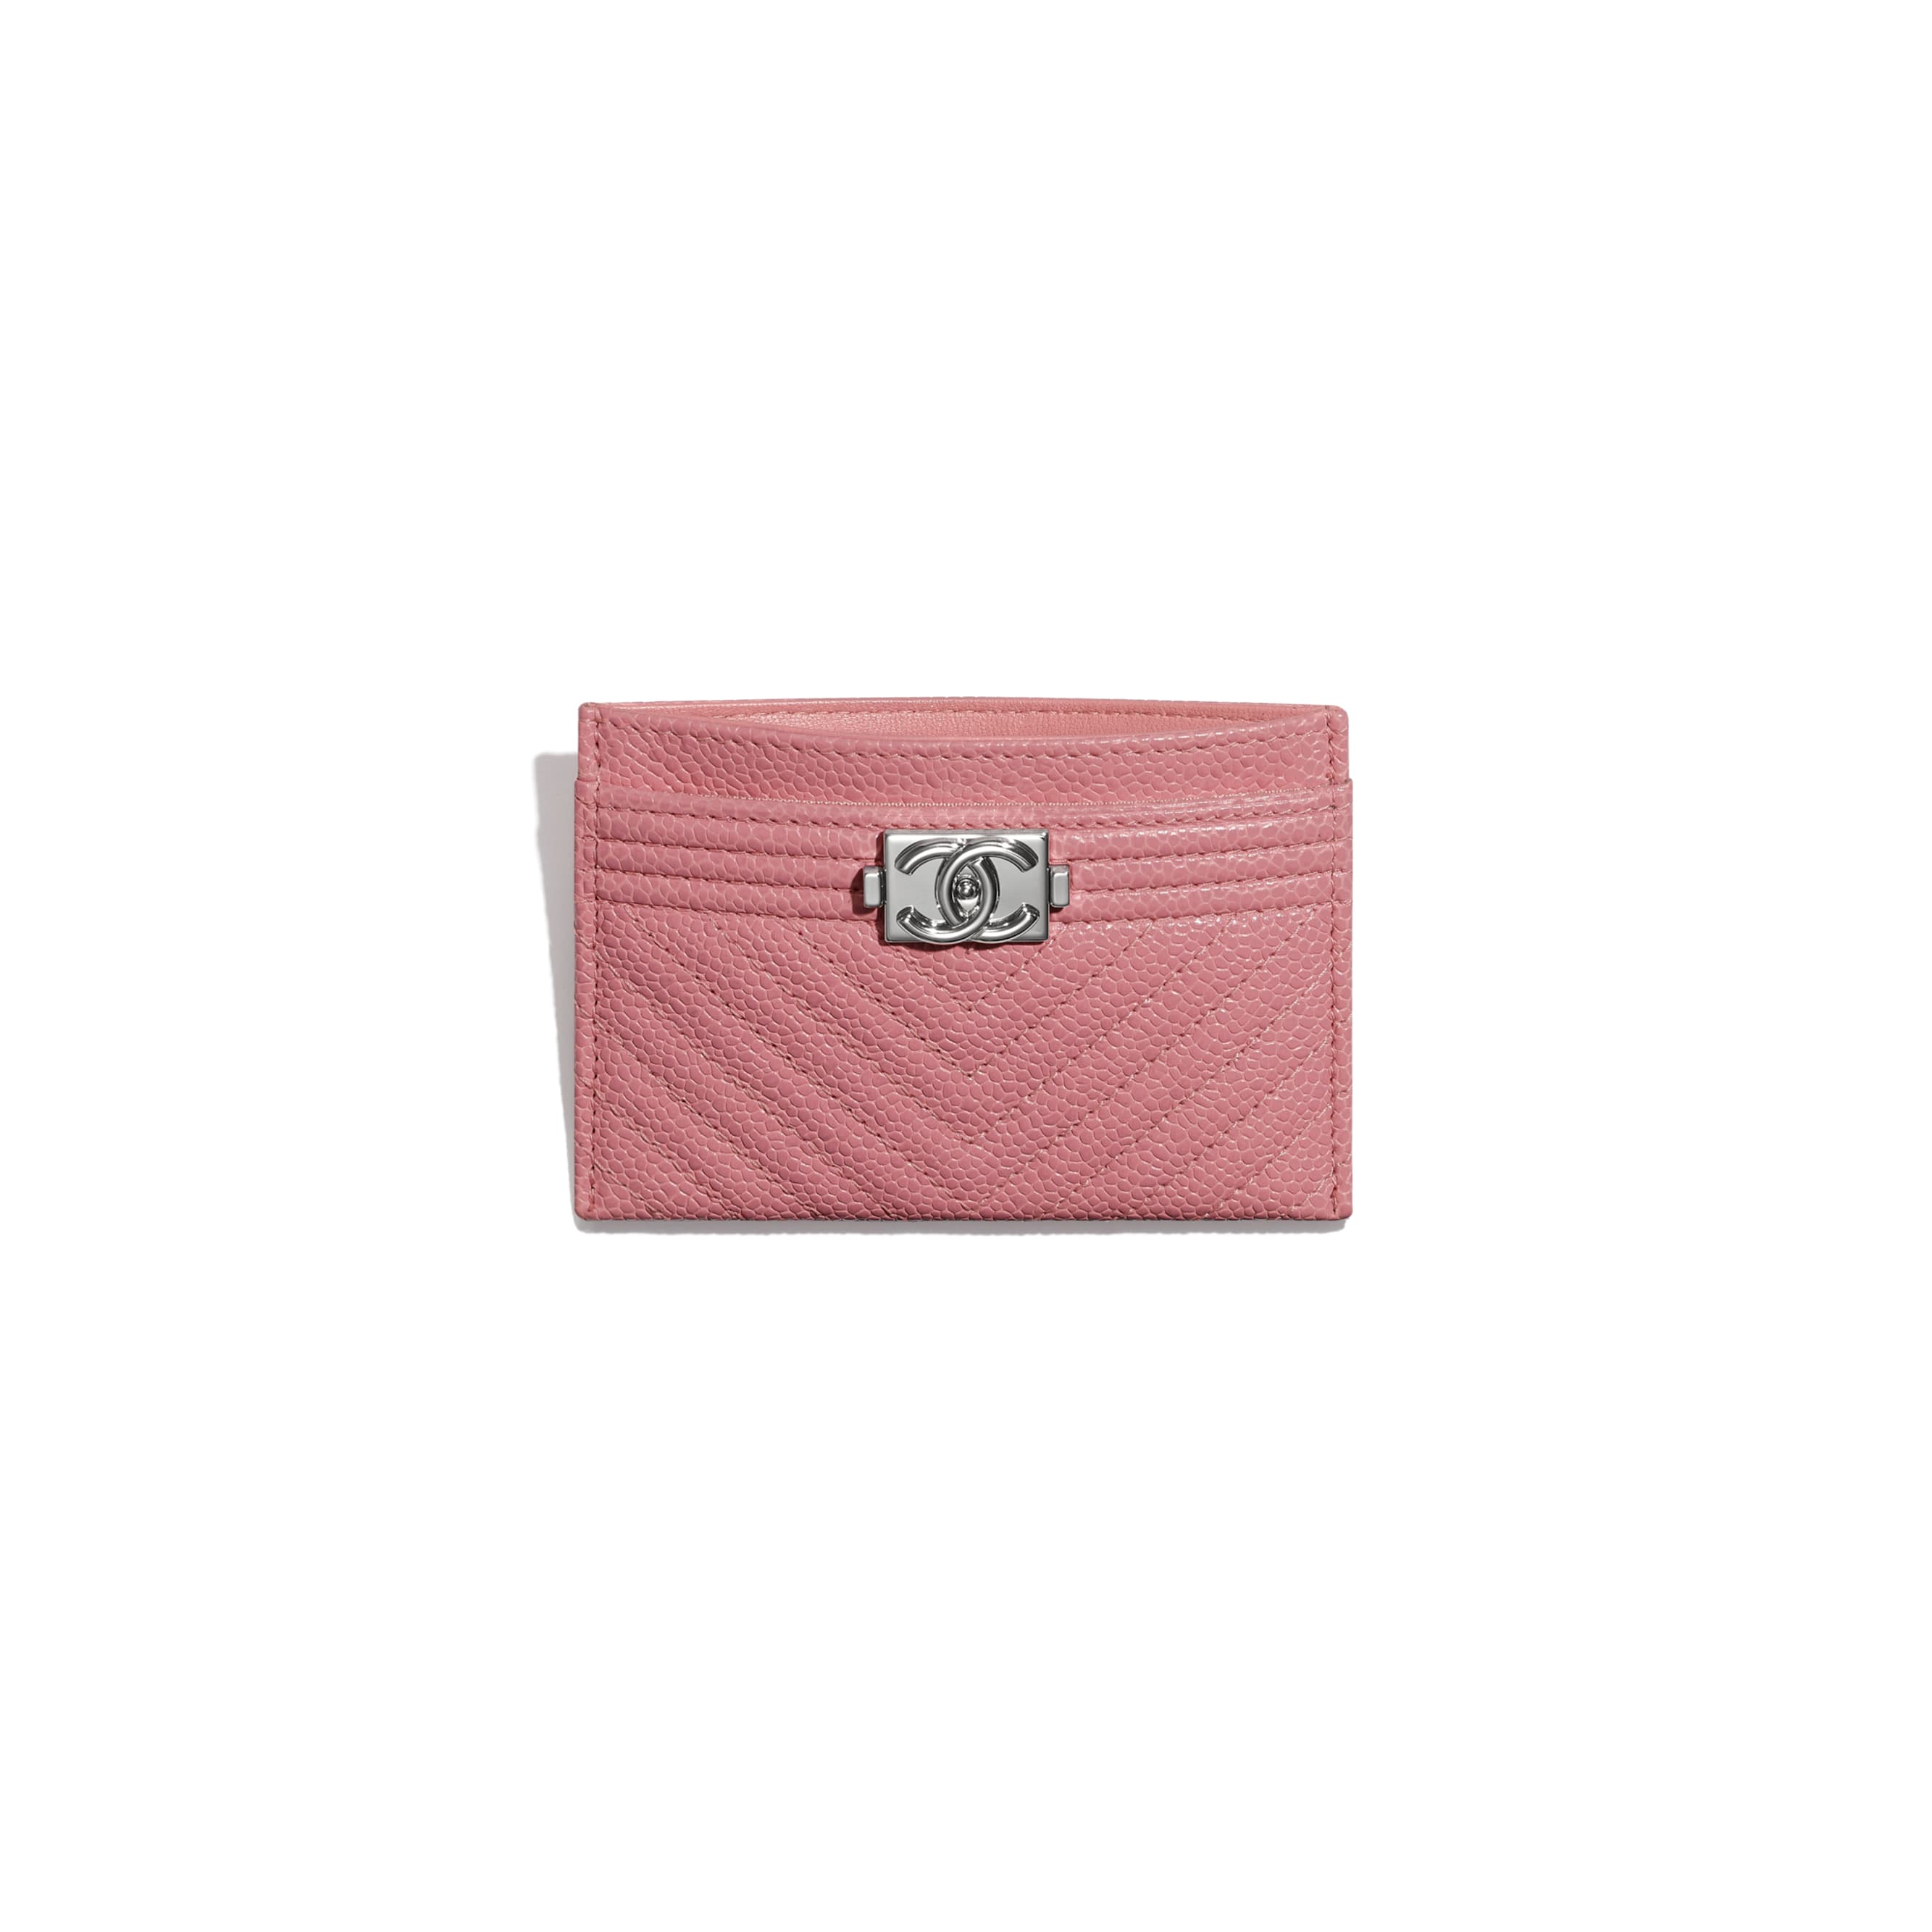 BOY CHANEL Card Holder - Pink - Shiny Grained Calfskin & Silver-Tone Metal - CHANEL - Other view - see standard sized version